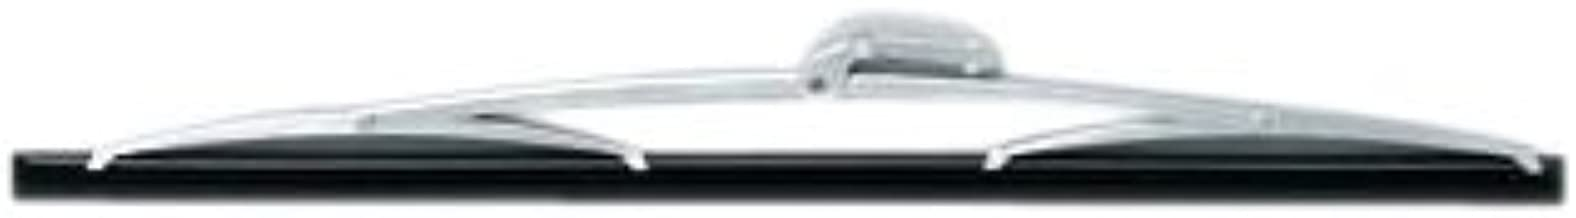 AFI 33016 Deluxe Stainless Steel Curved Marine Windshield Wiper Blade (18